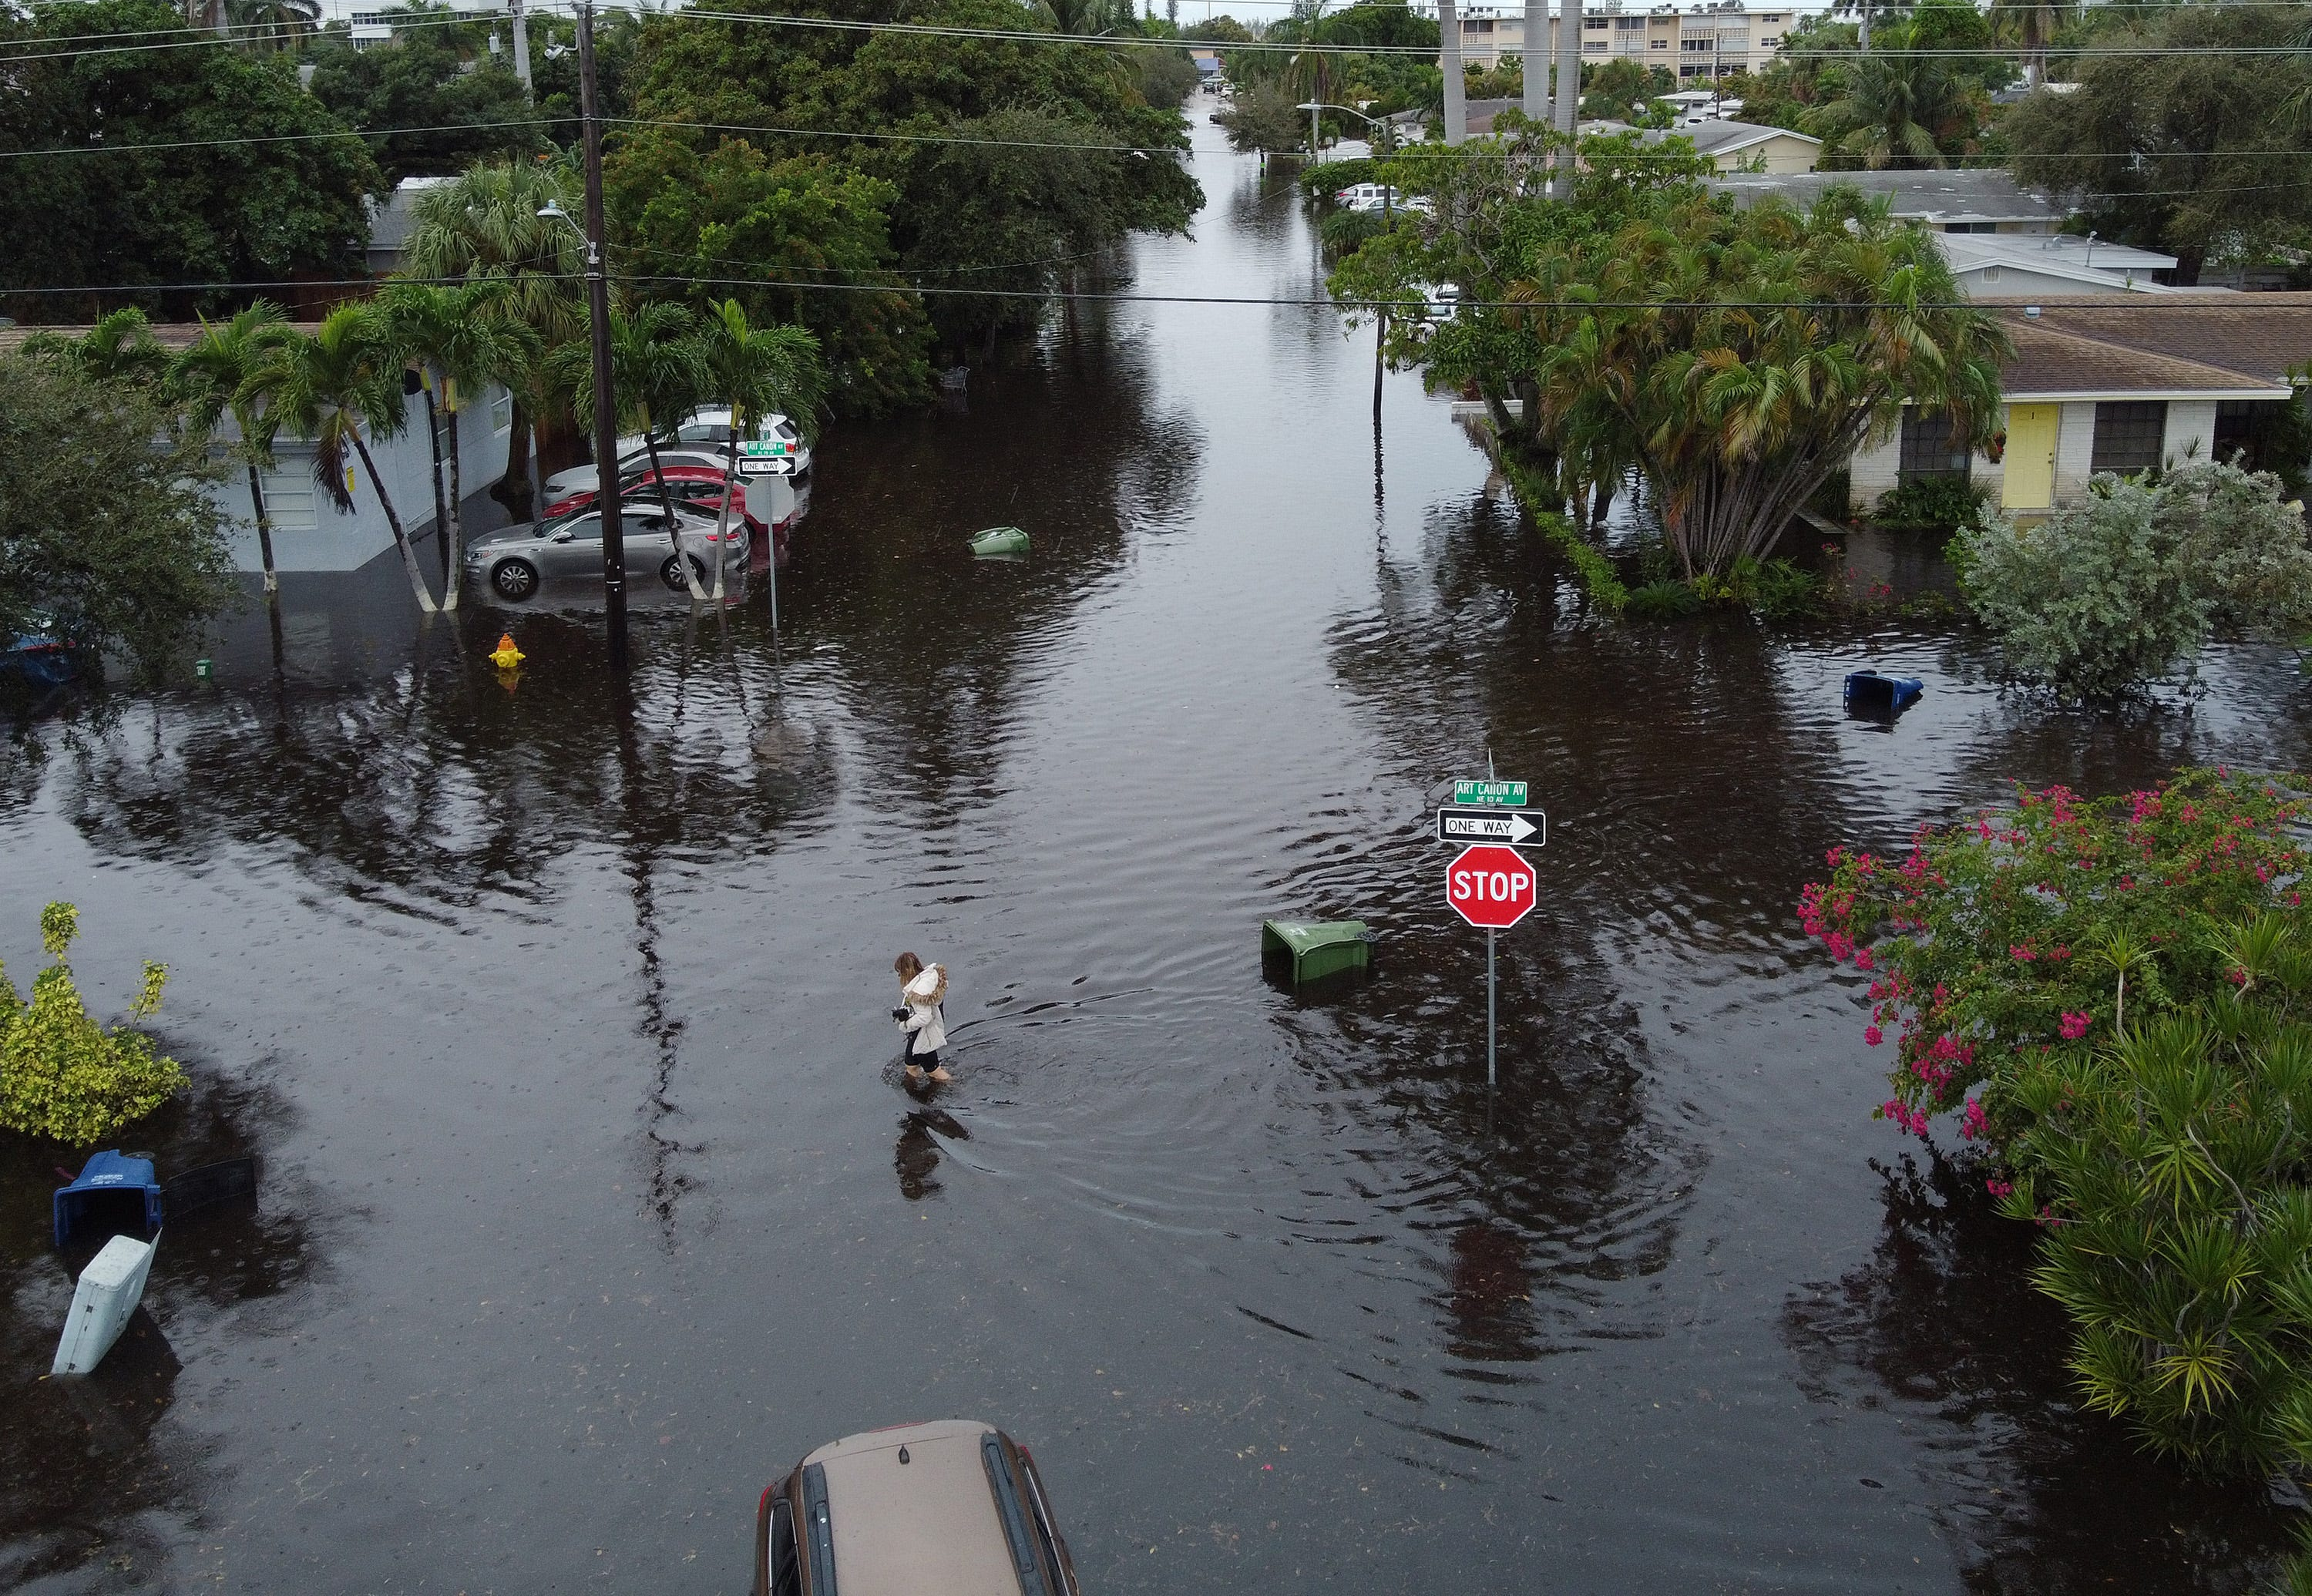 An aerial view from a drone shows a woman crossing a street inundated with flood water on Dec. 23, 2019 in Hallandale, Fla. The area received up to 12 inches of rain during an overnight storm that hit the area causing flooding that even forced Fort Lauderdale-Hollywood International Airport to shut down flight operations early Monday morning.